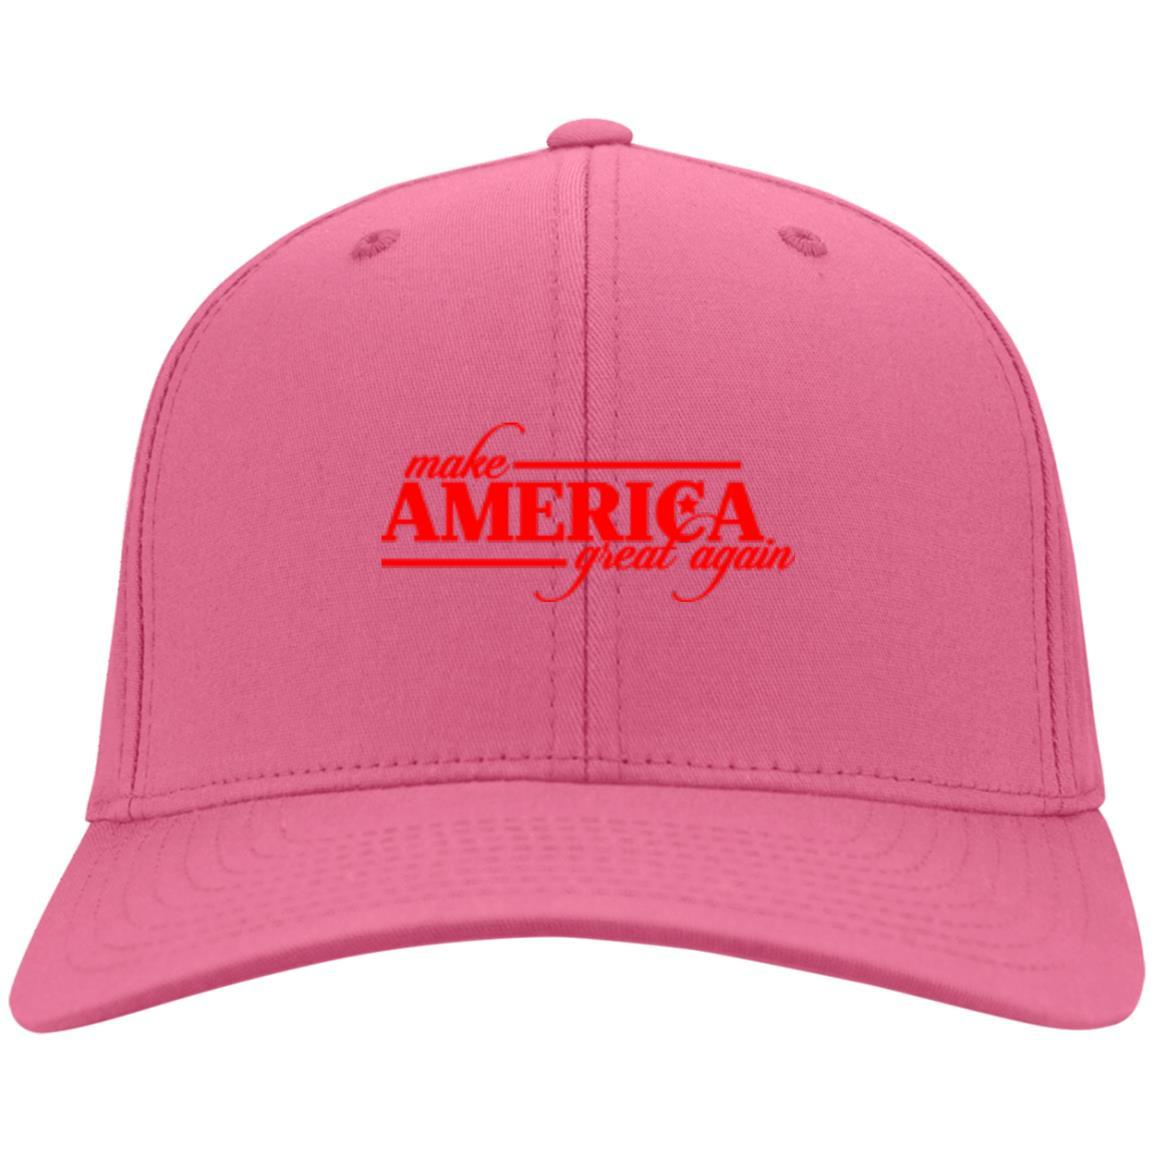 Make America Great Again - Port & Co. Twill Cap Neon Pink